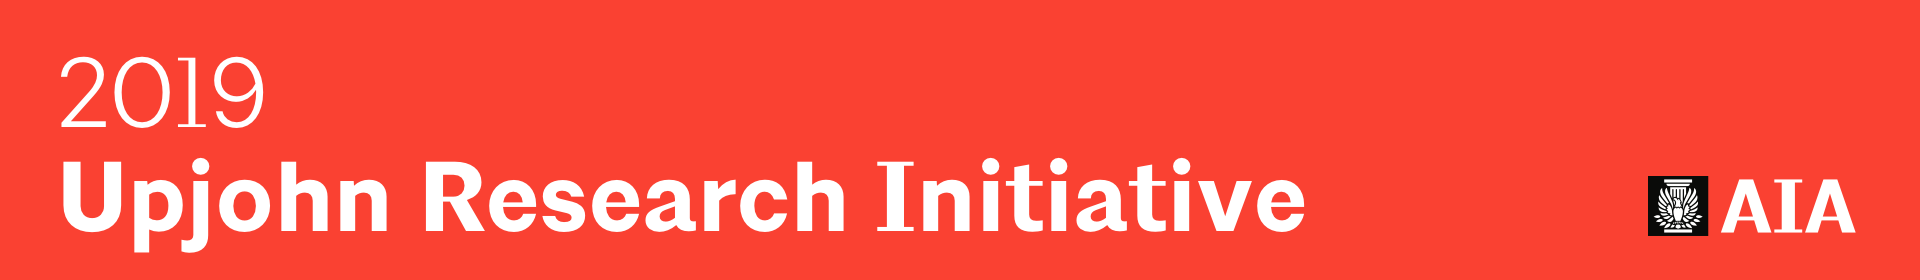 AIA Upjohn Research Initiative Grants Event Banner